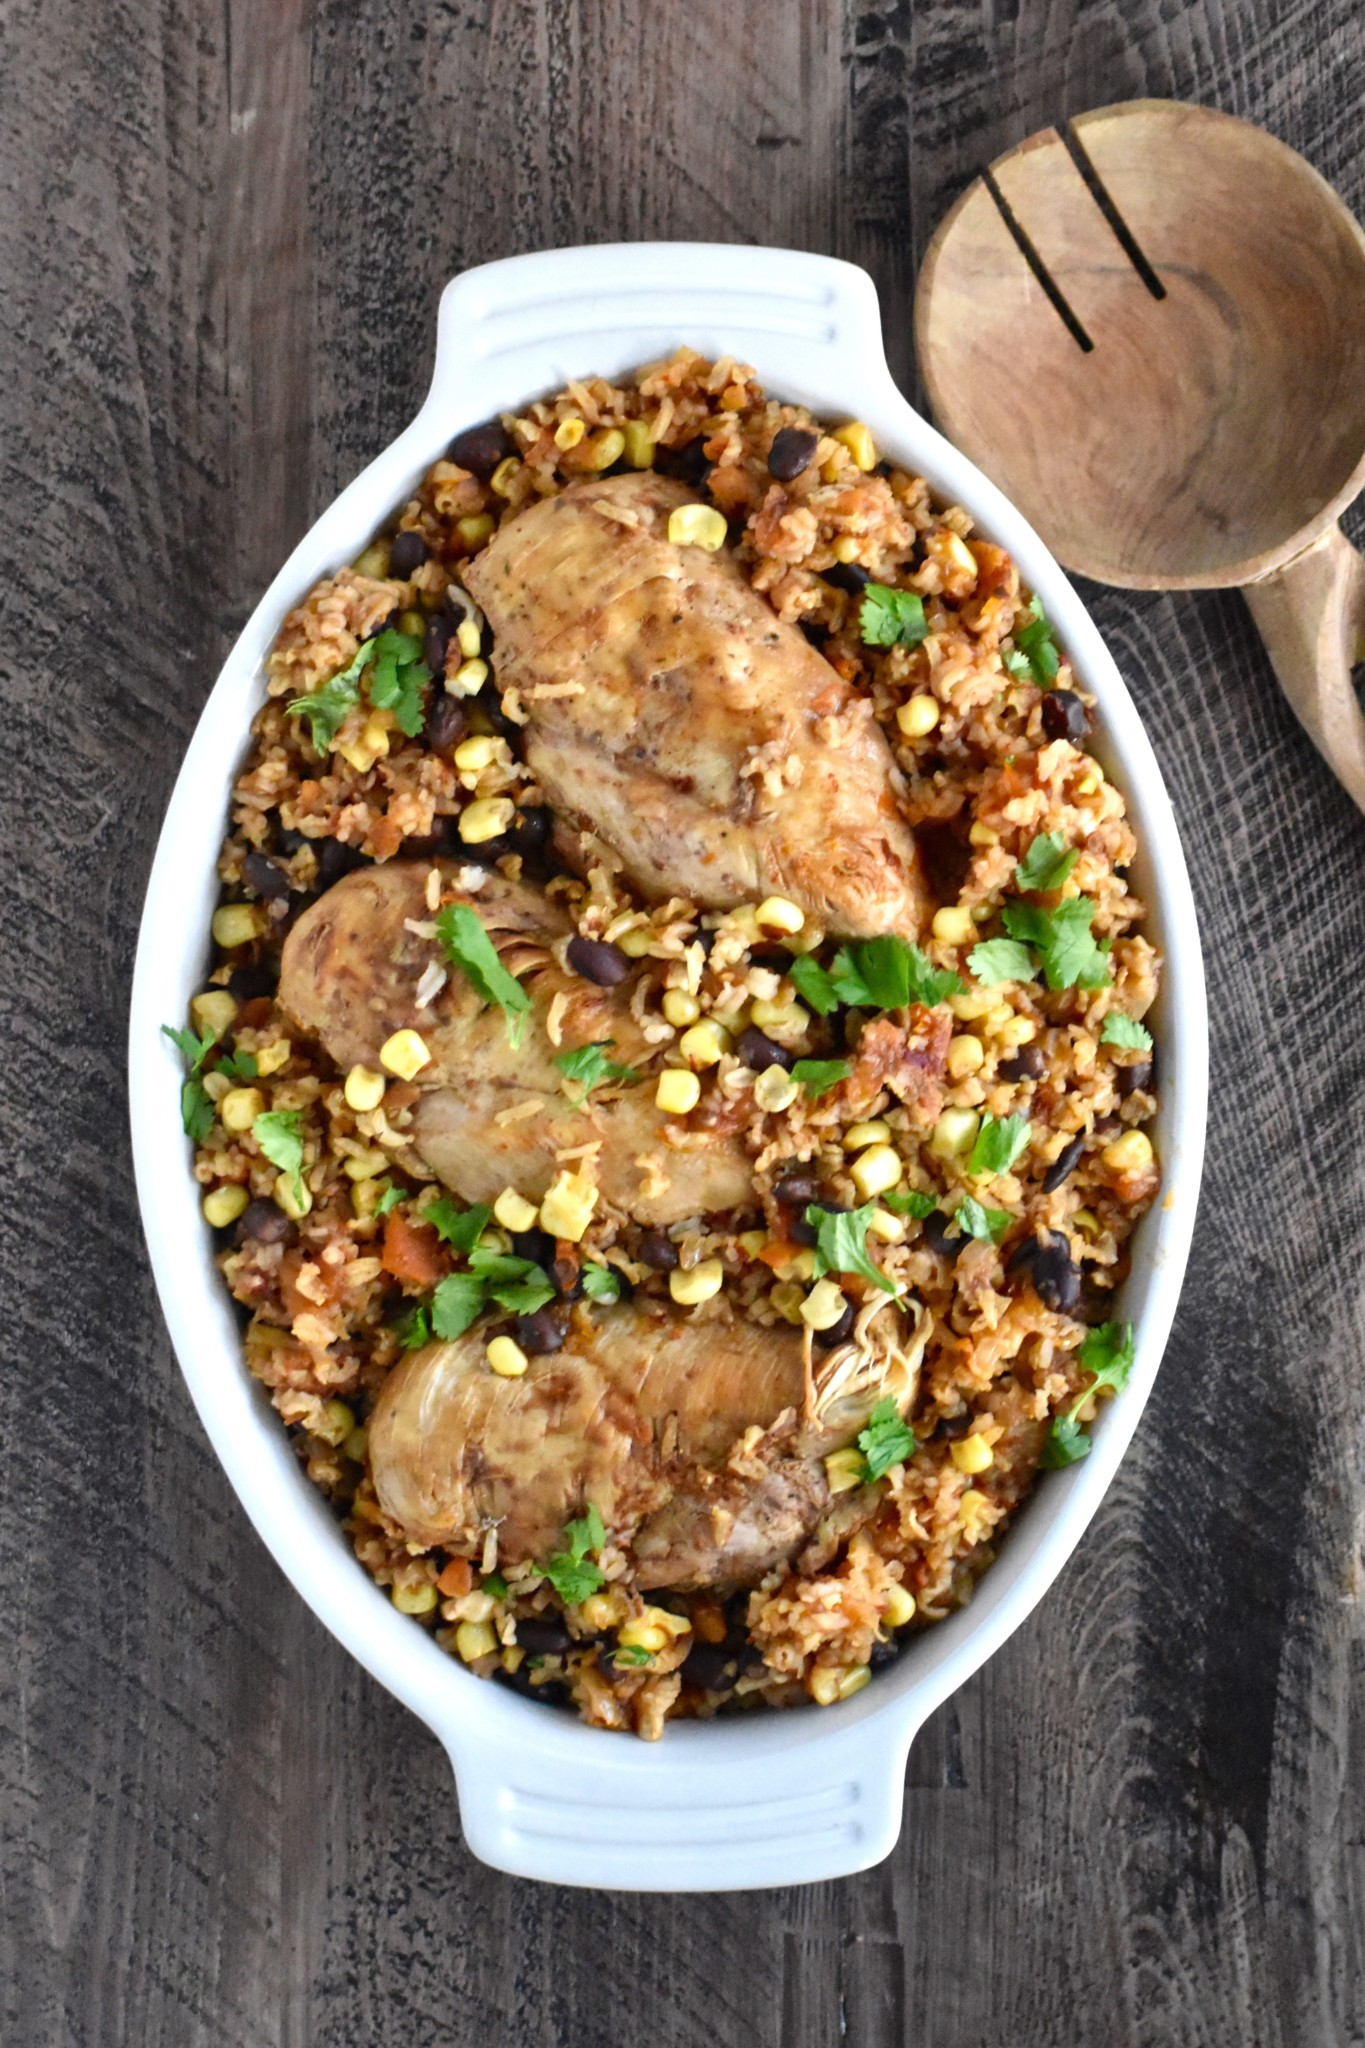 one-pot chipotle chicken, black bean and brown rice - loaded with nutrition and you only need to dirty one dish! // cait's plate